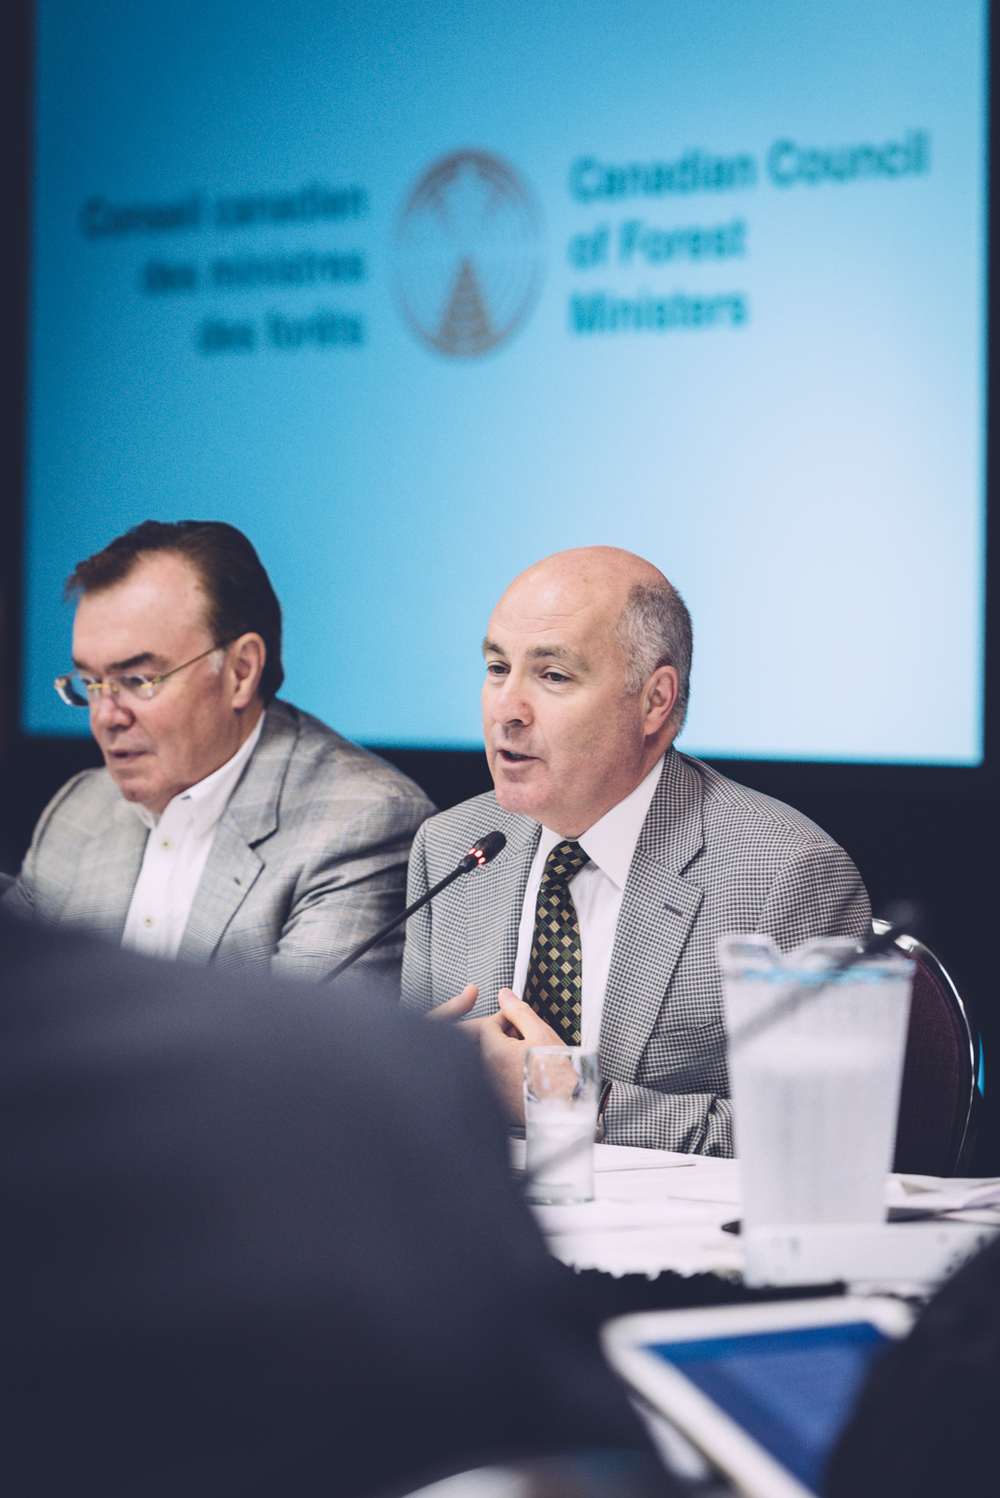 canadian_council_forest_ministers_blog22.jpg